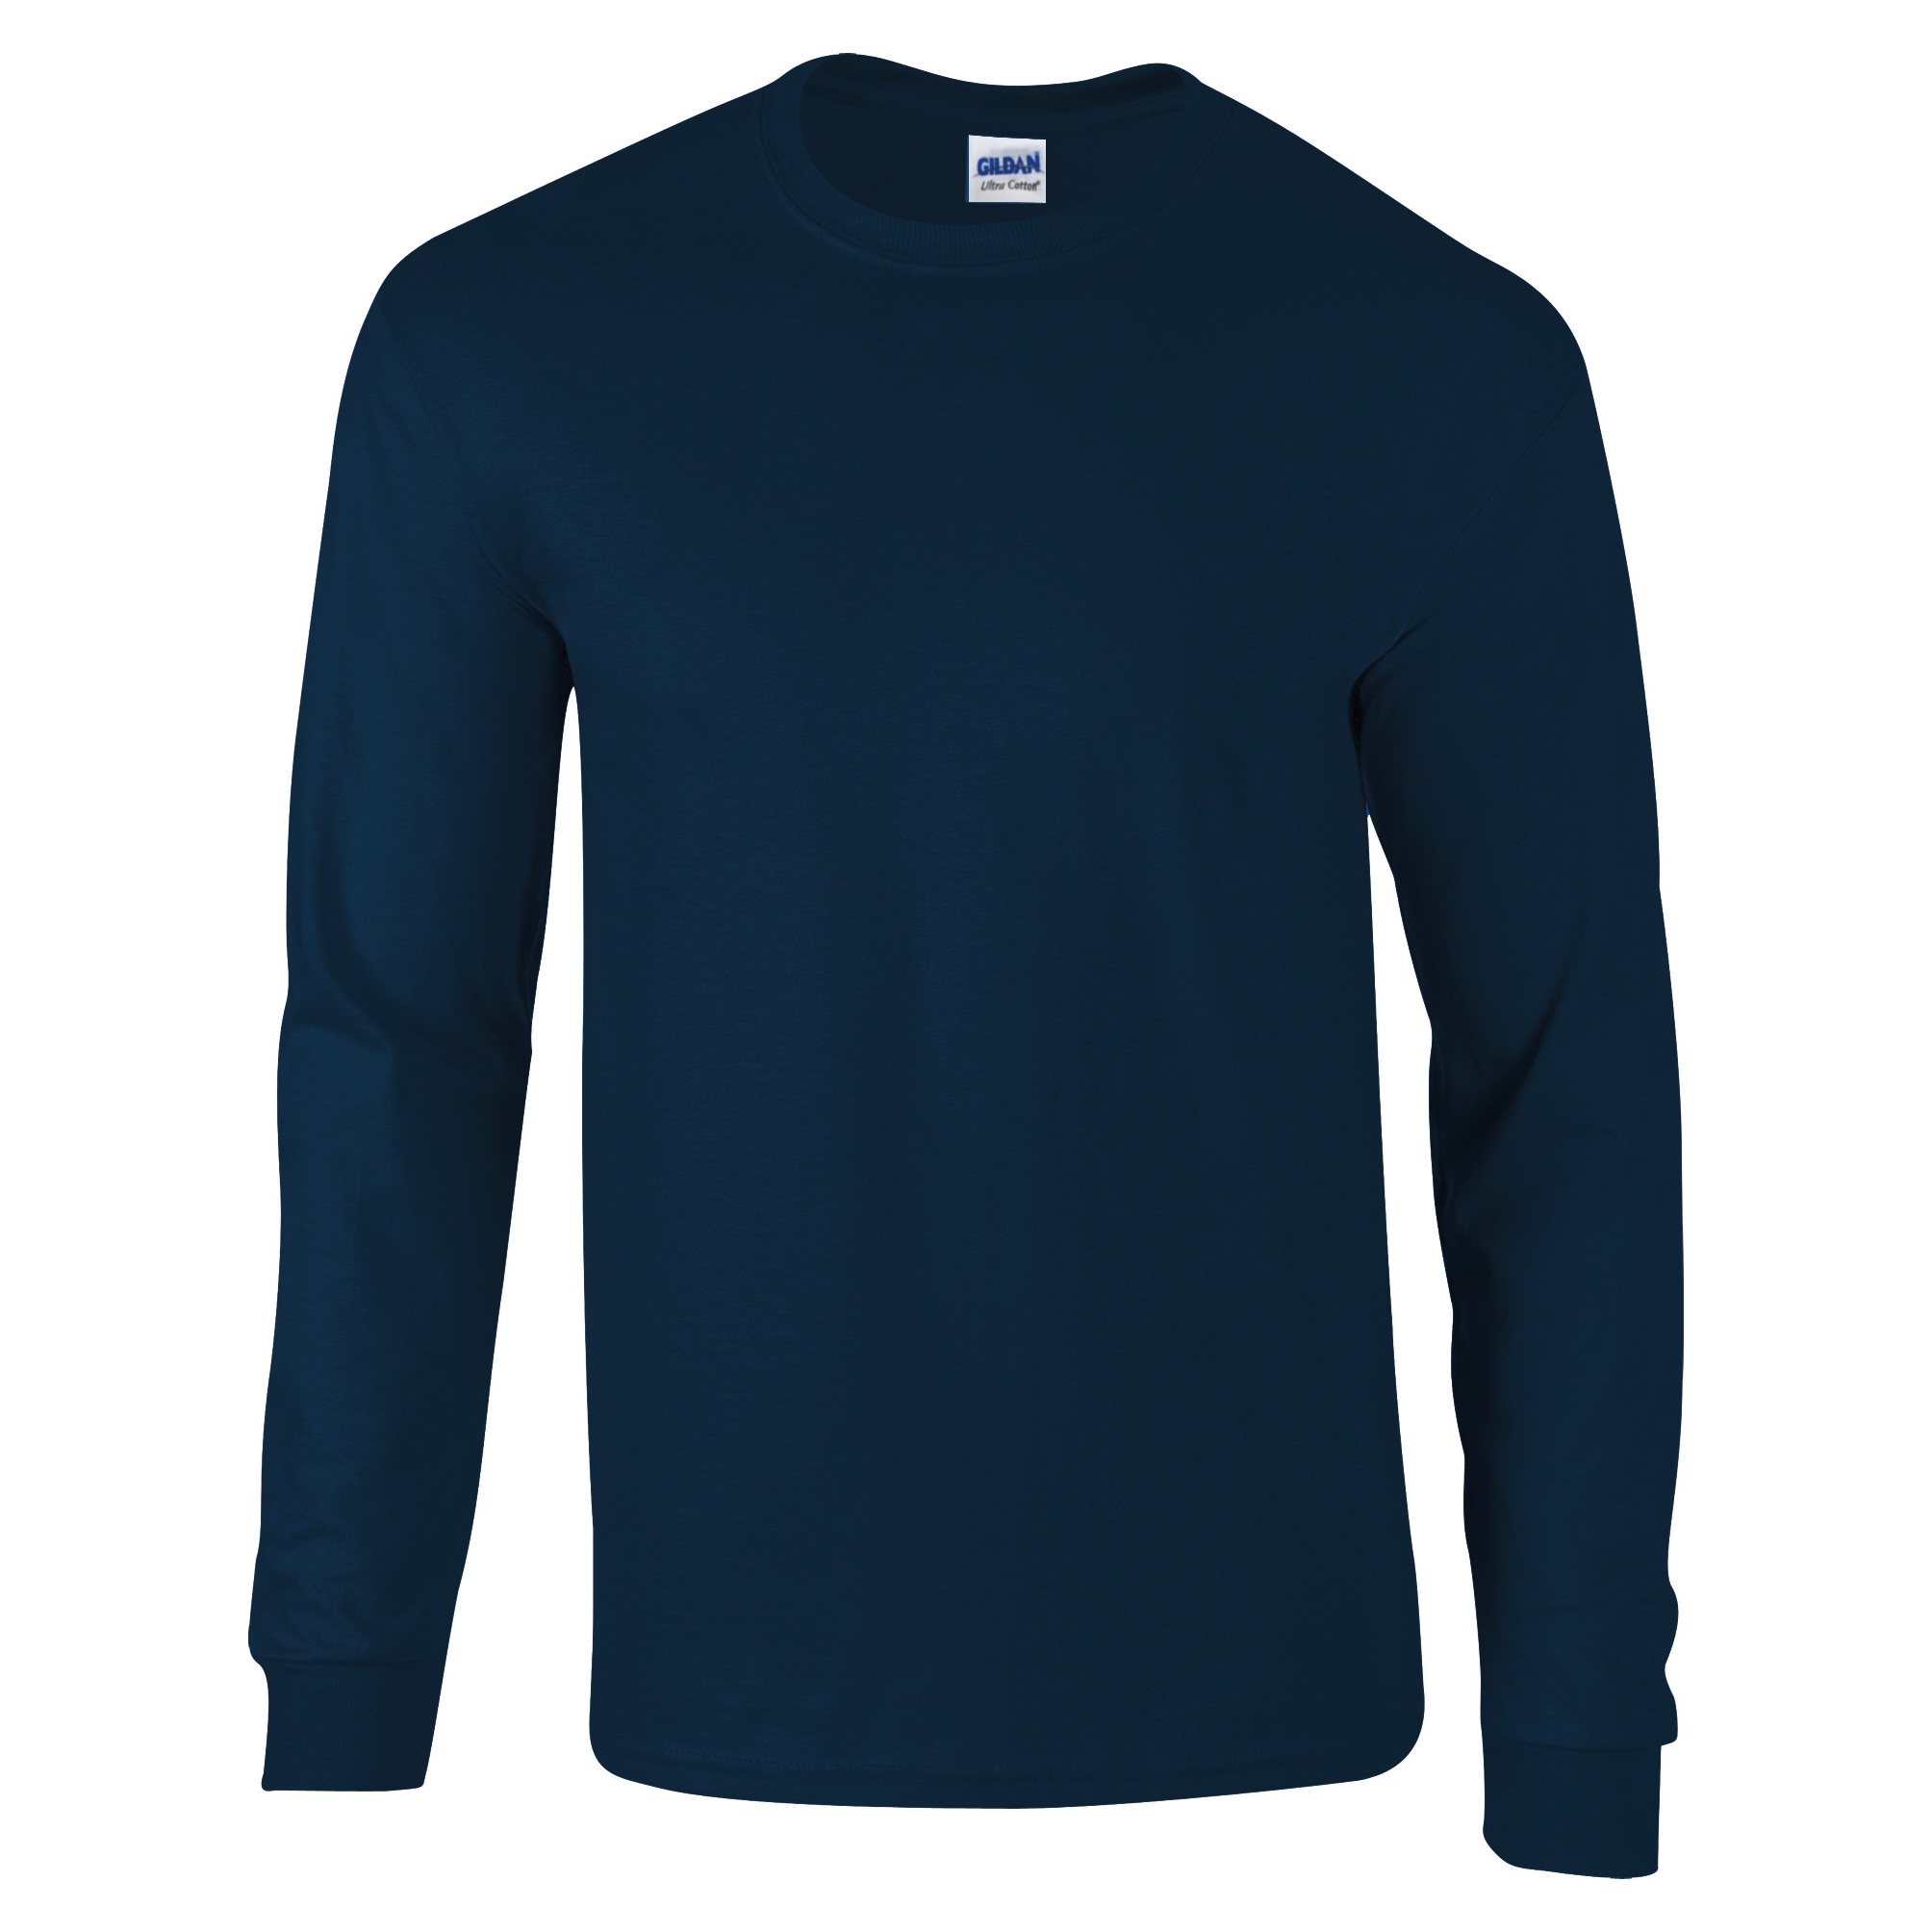 Gildan ultra cotton mens long sleeve crew neck t shirt 100 for Mens 100 cotton t shirts